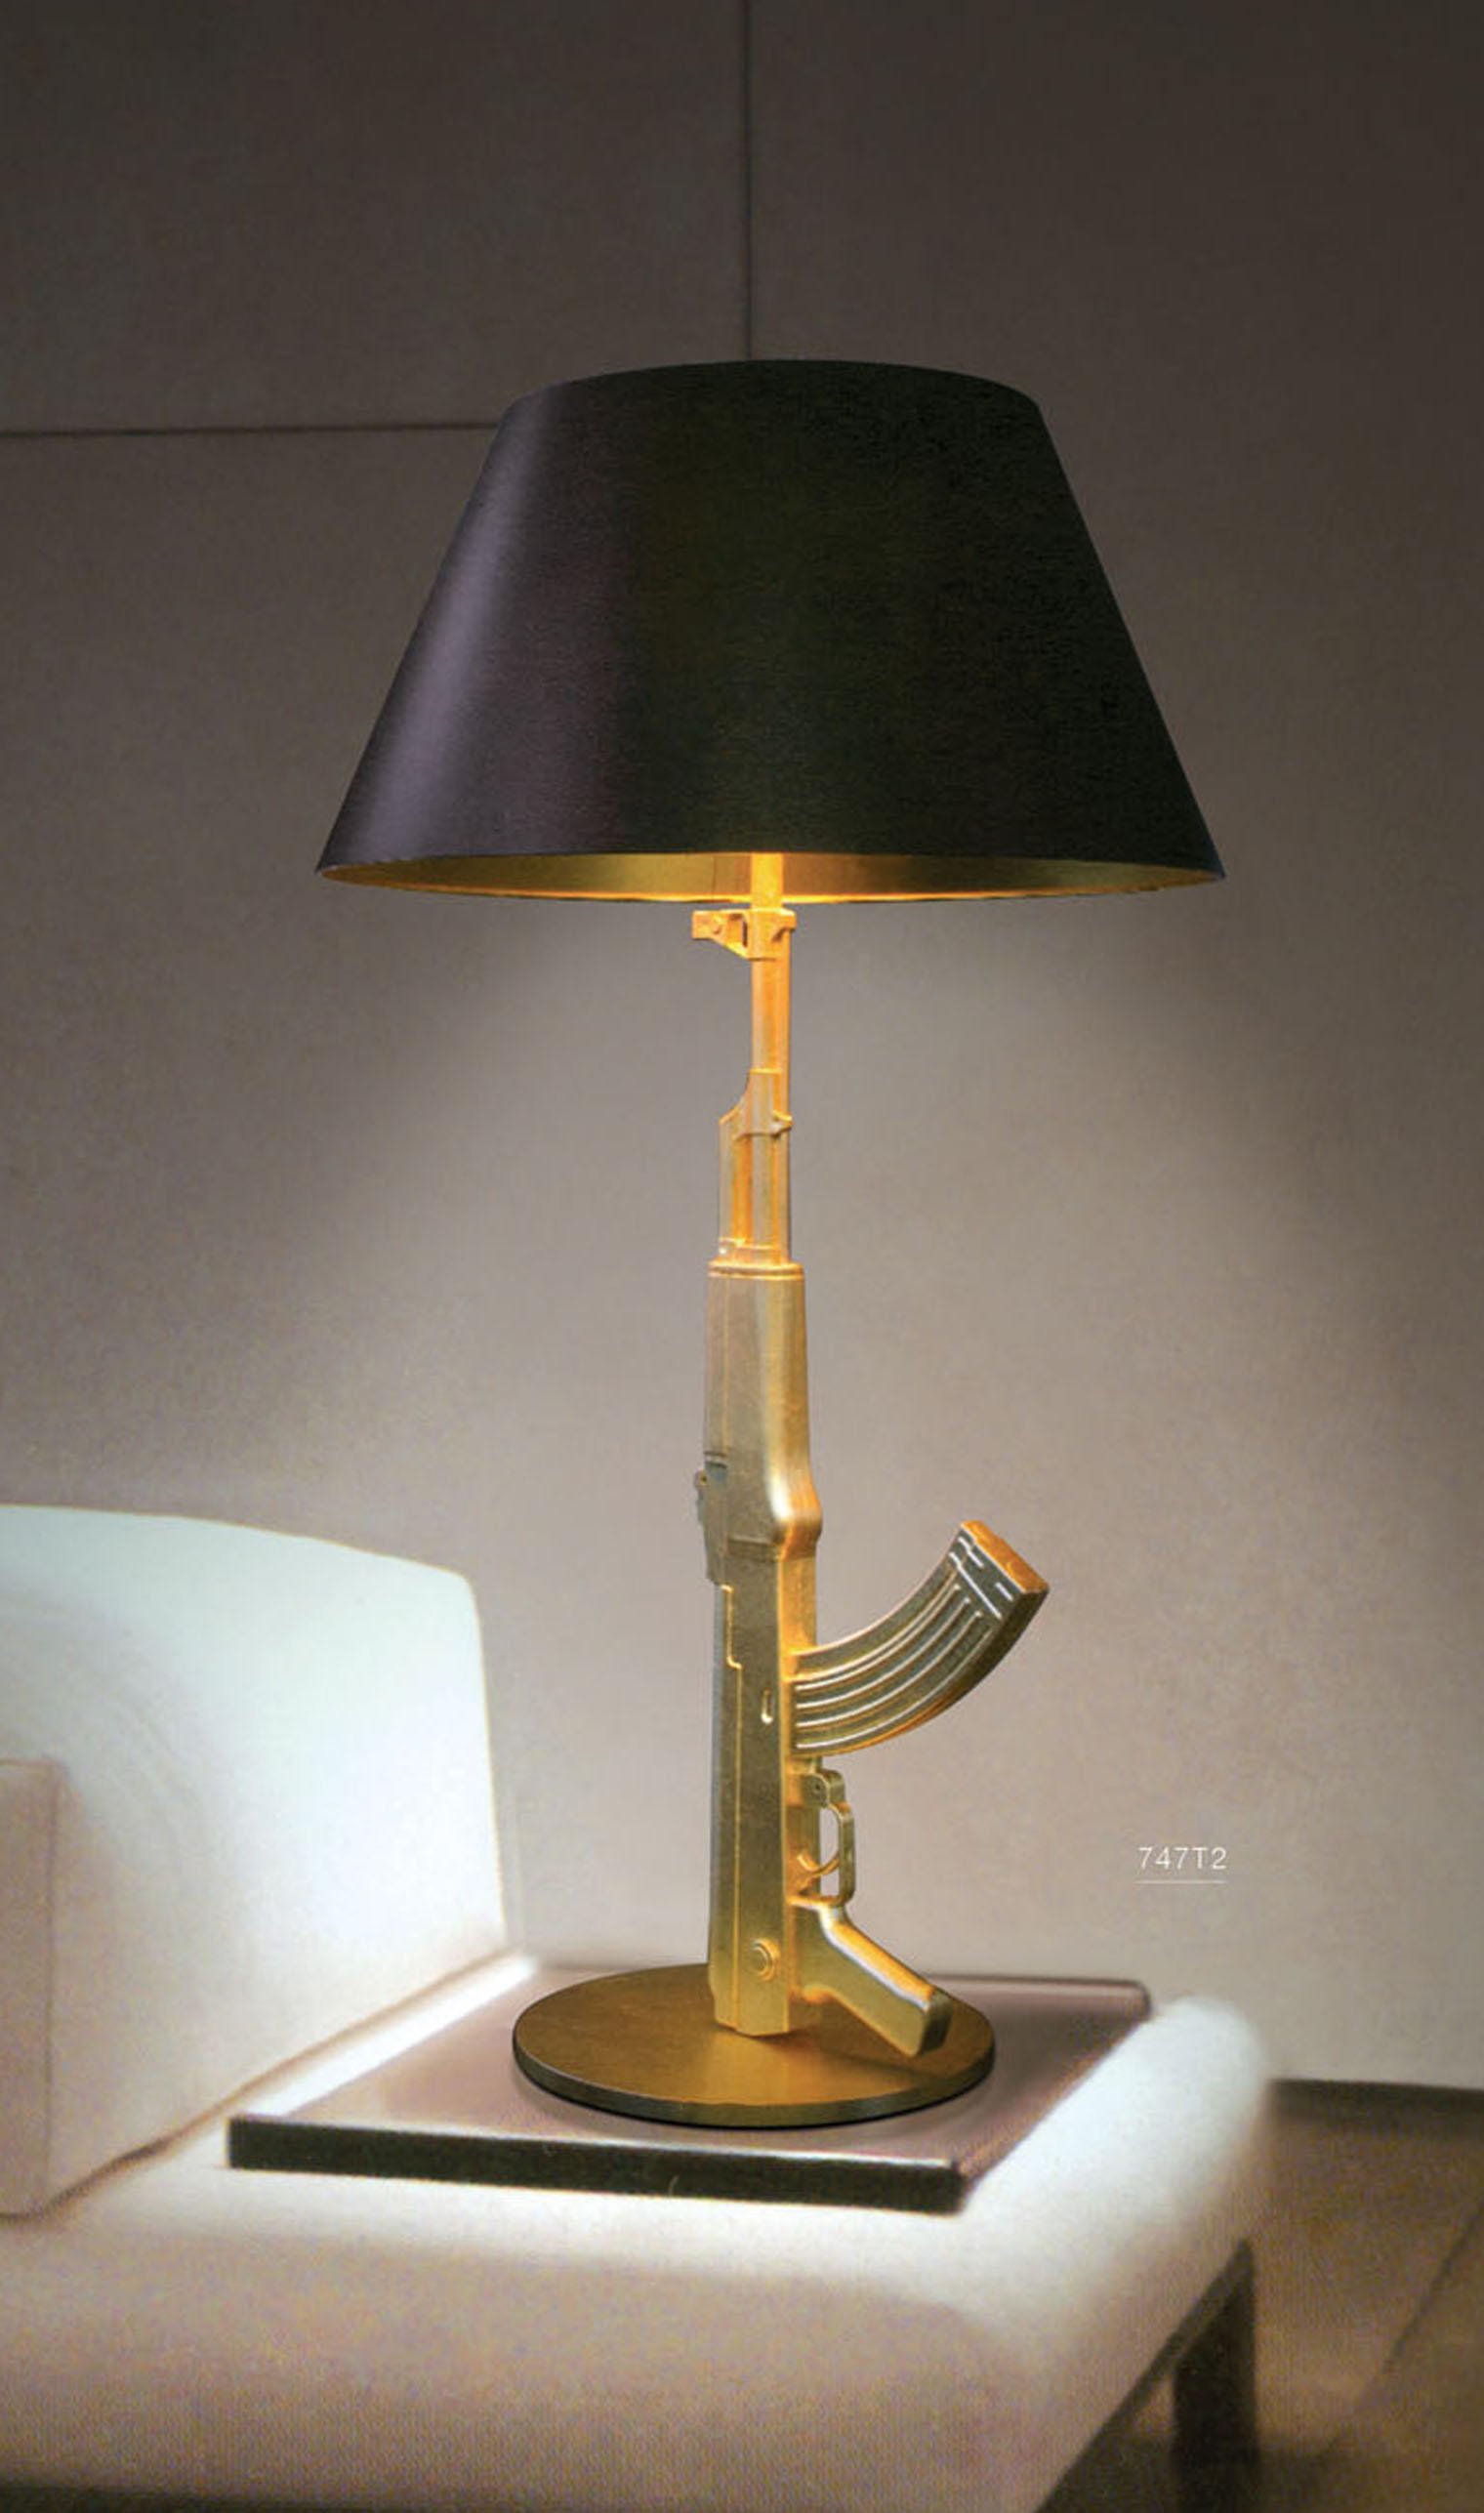 lighting lamps modern living room lamp fols lamp personalized ak47 lamp decoration lamp intable. Black Bedroom Furniture Sets. Home Design Ideas